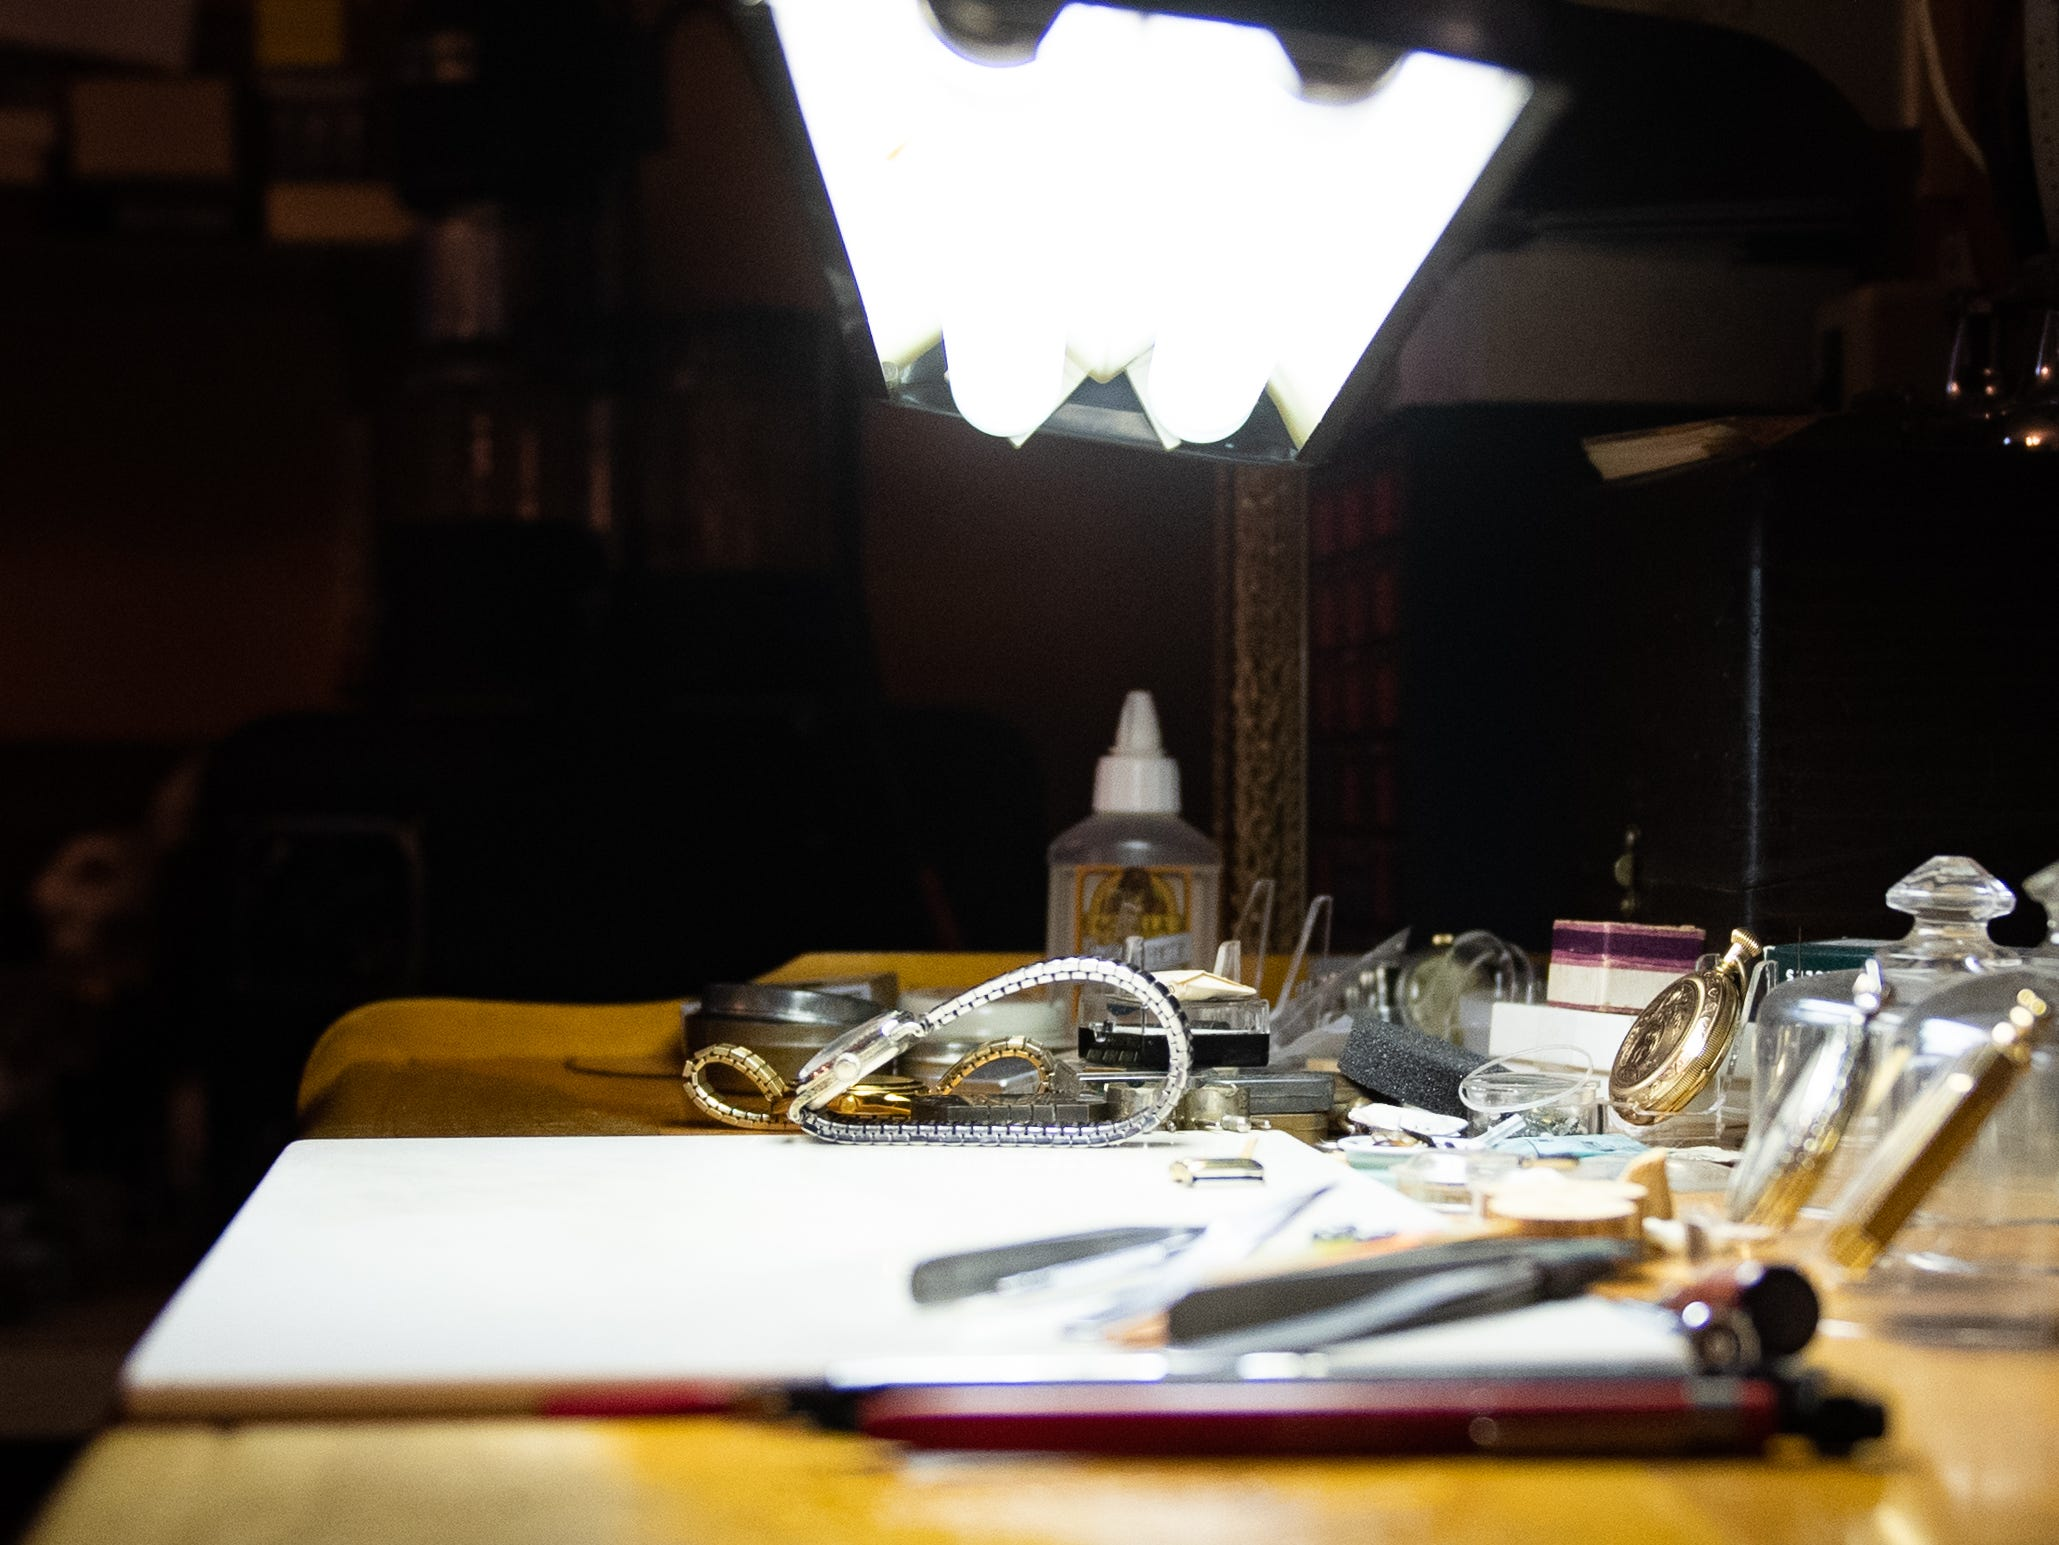 This is owner Ronald Botterbusch's work area where he fixes watches of all kinds, January 30, 2019.